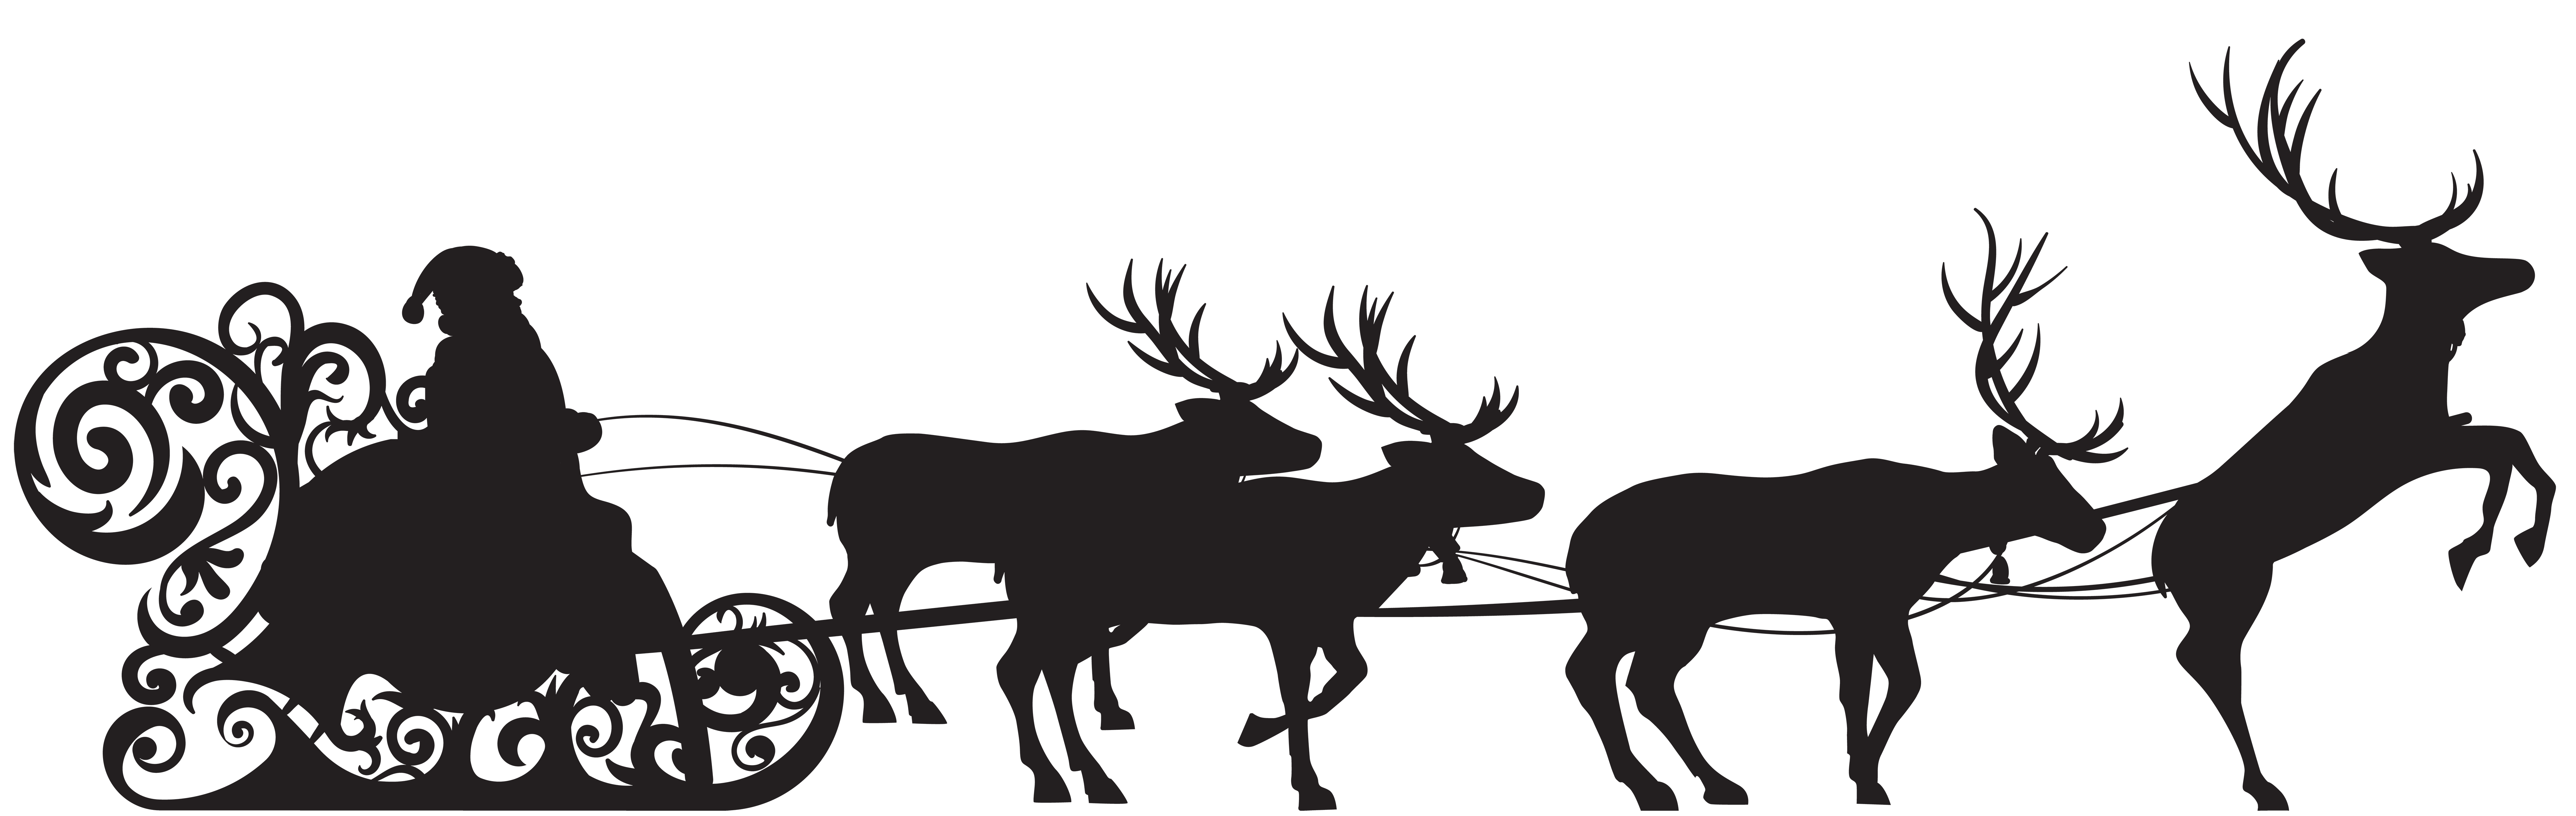 Santa sleigh silhouette png. Claus on sled clip